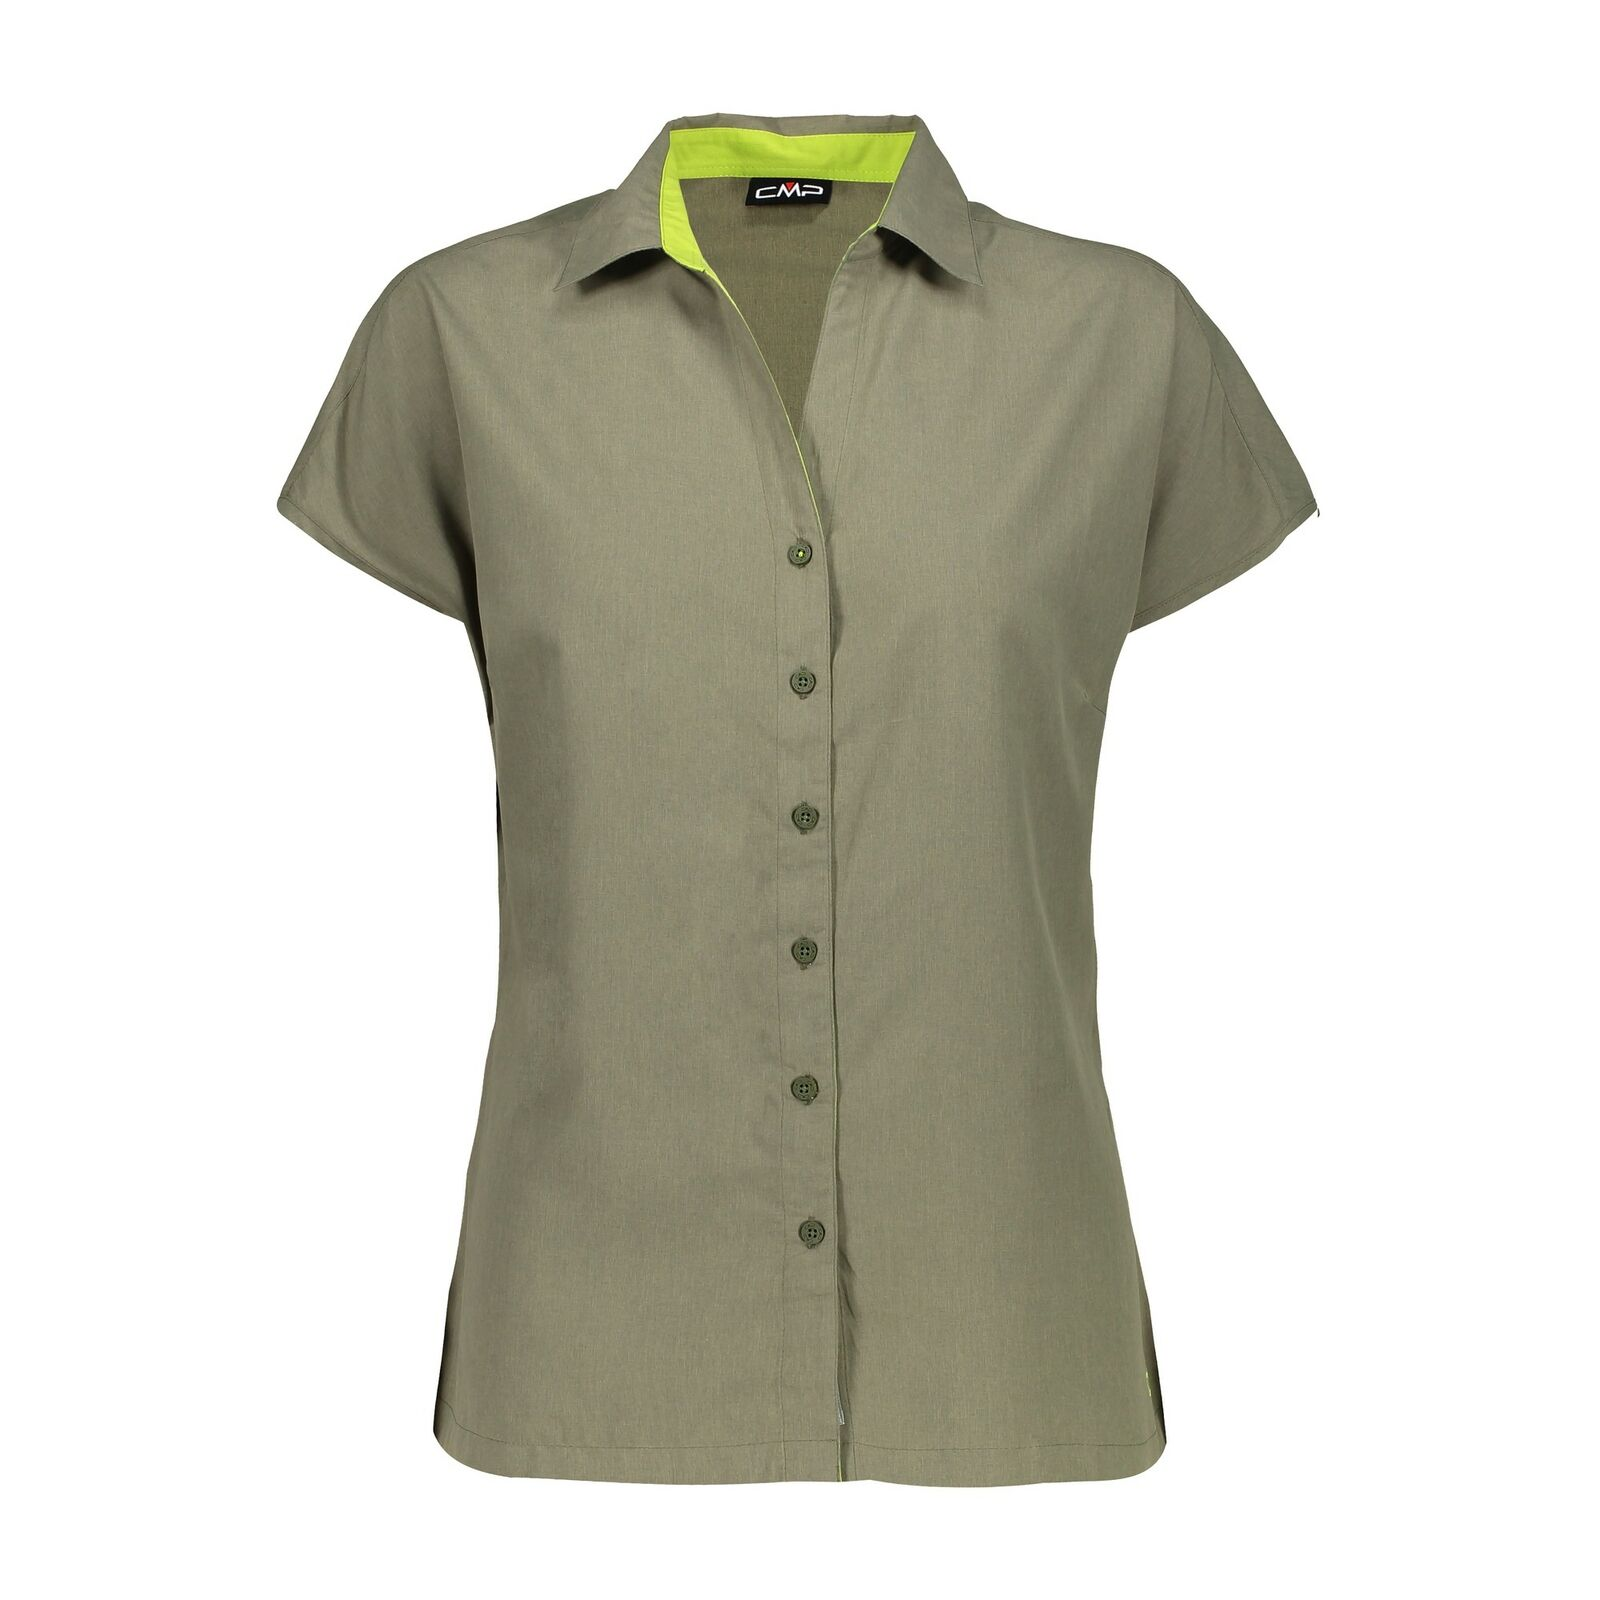 CMP woman brown shirt blouse  breathable antibacterial predection-uv mottled  sale online save 70%